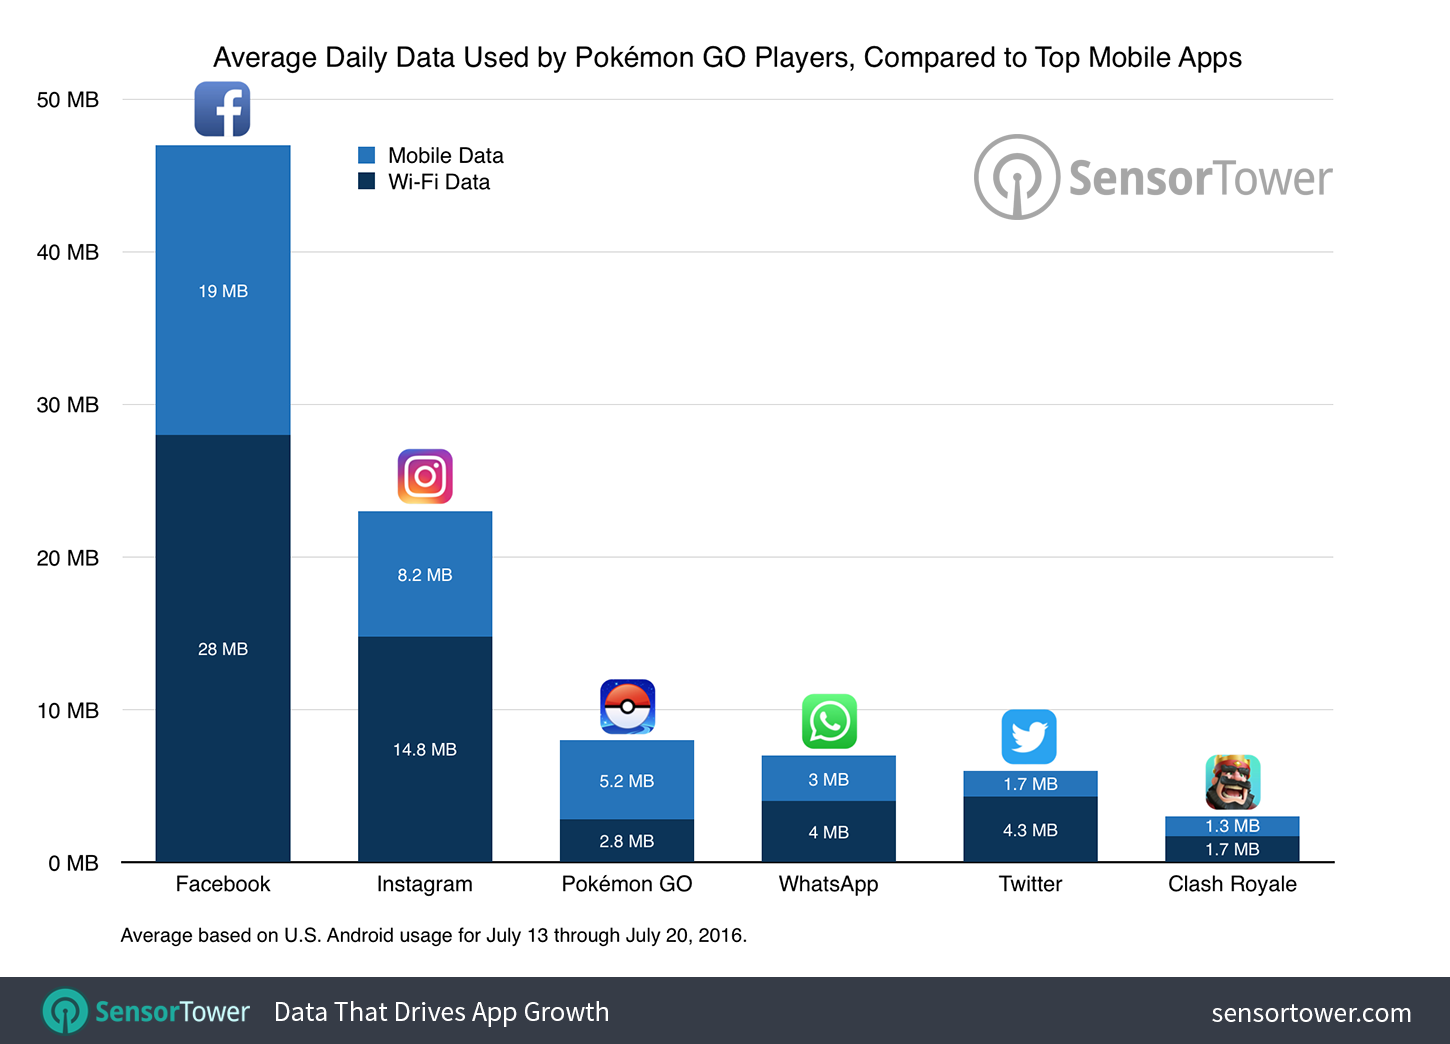 Pok mon go isn t a mobile data hog and this data proves it